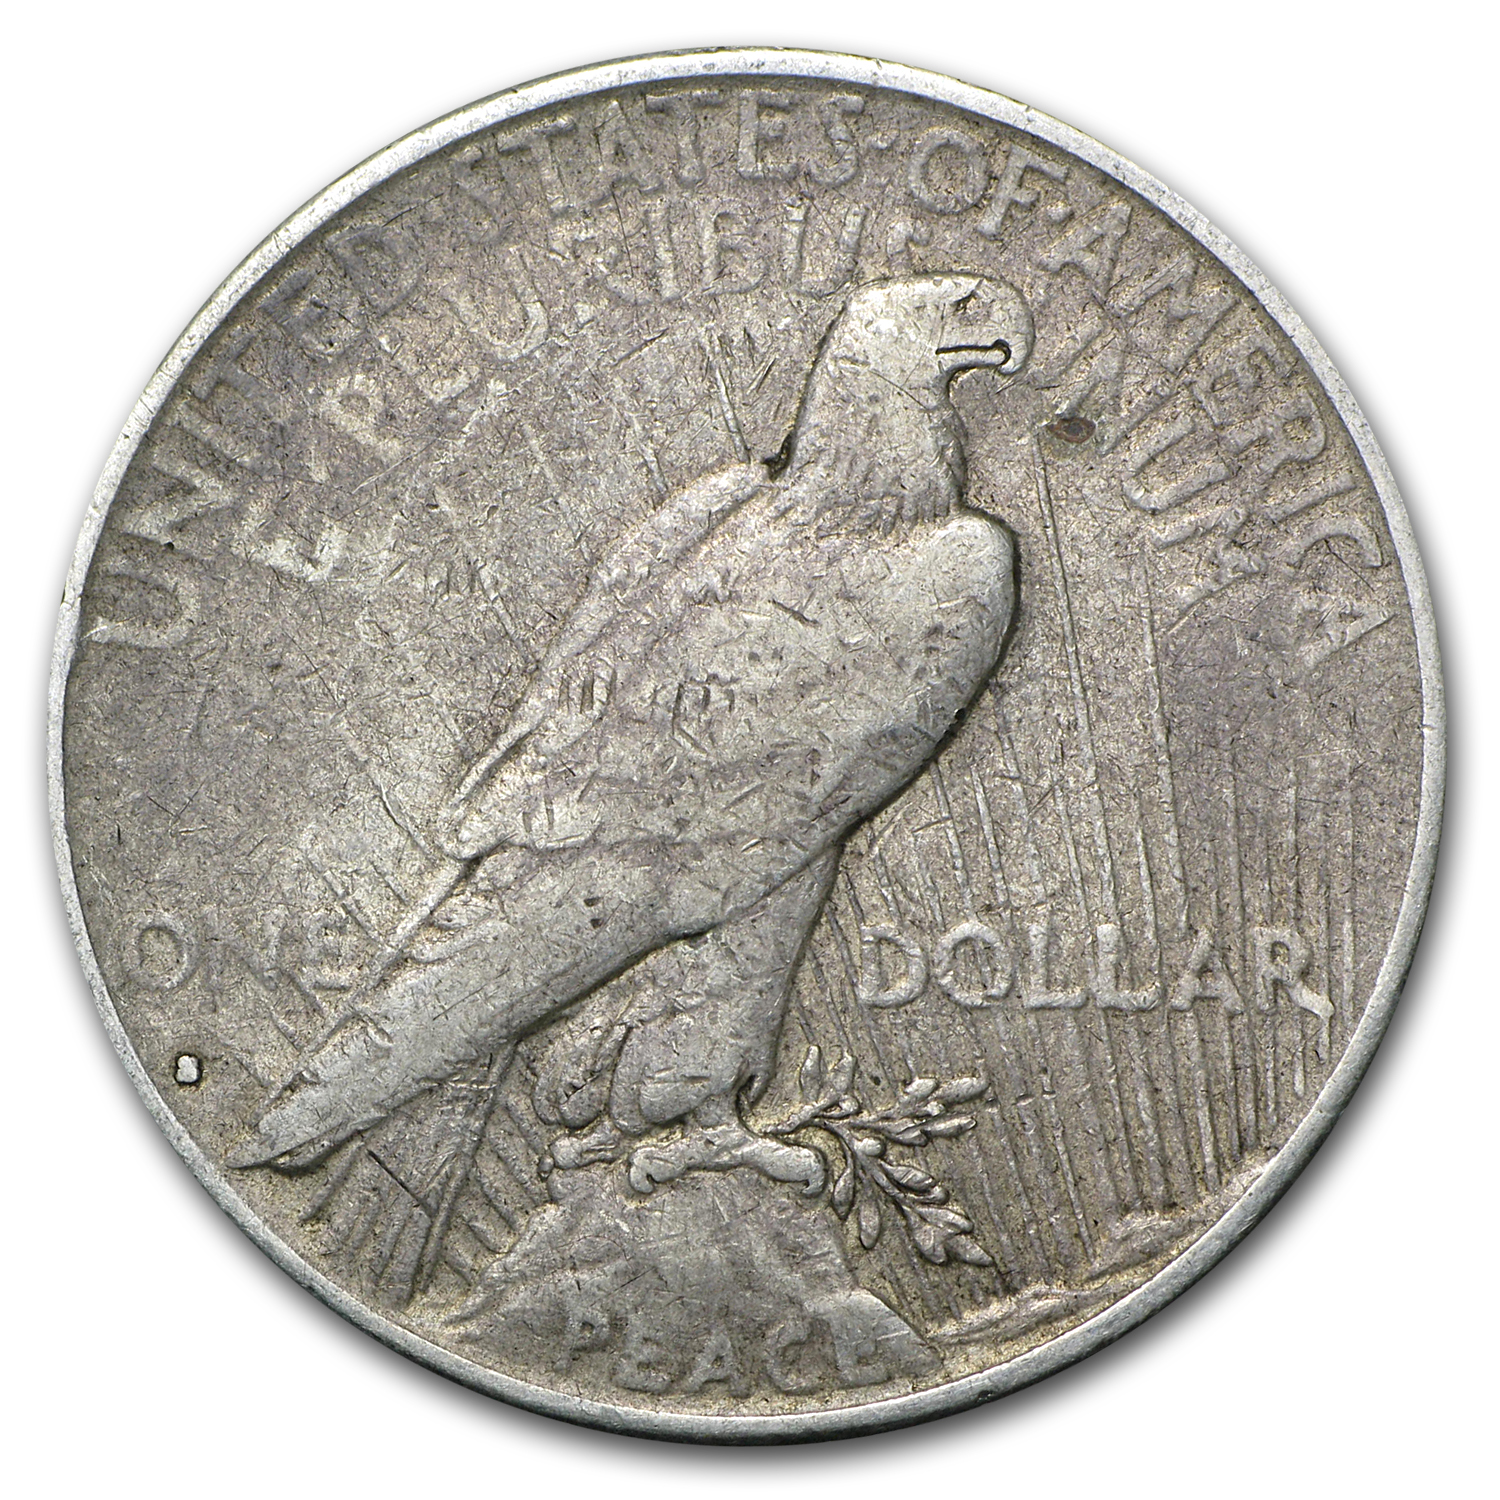 1934-S Peace Dollar - Very Fine